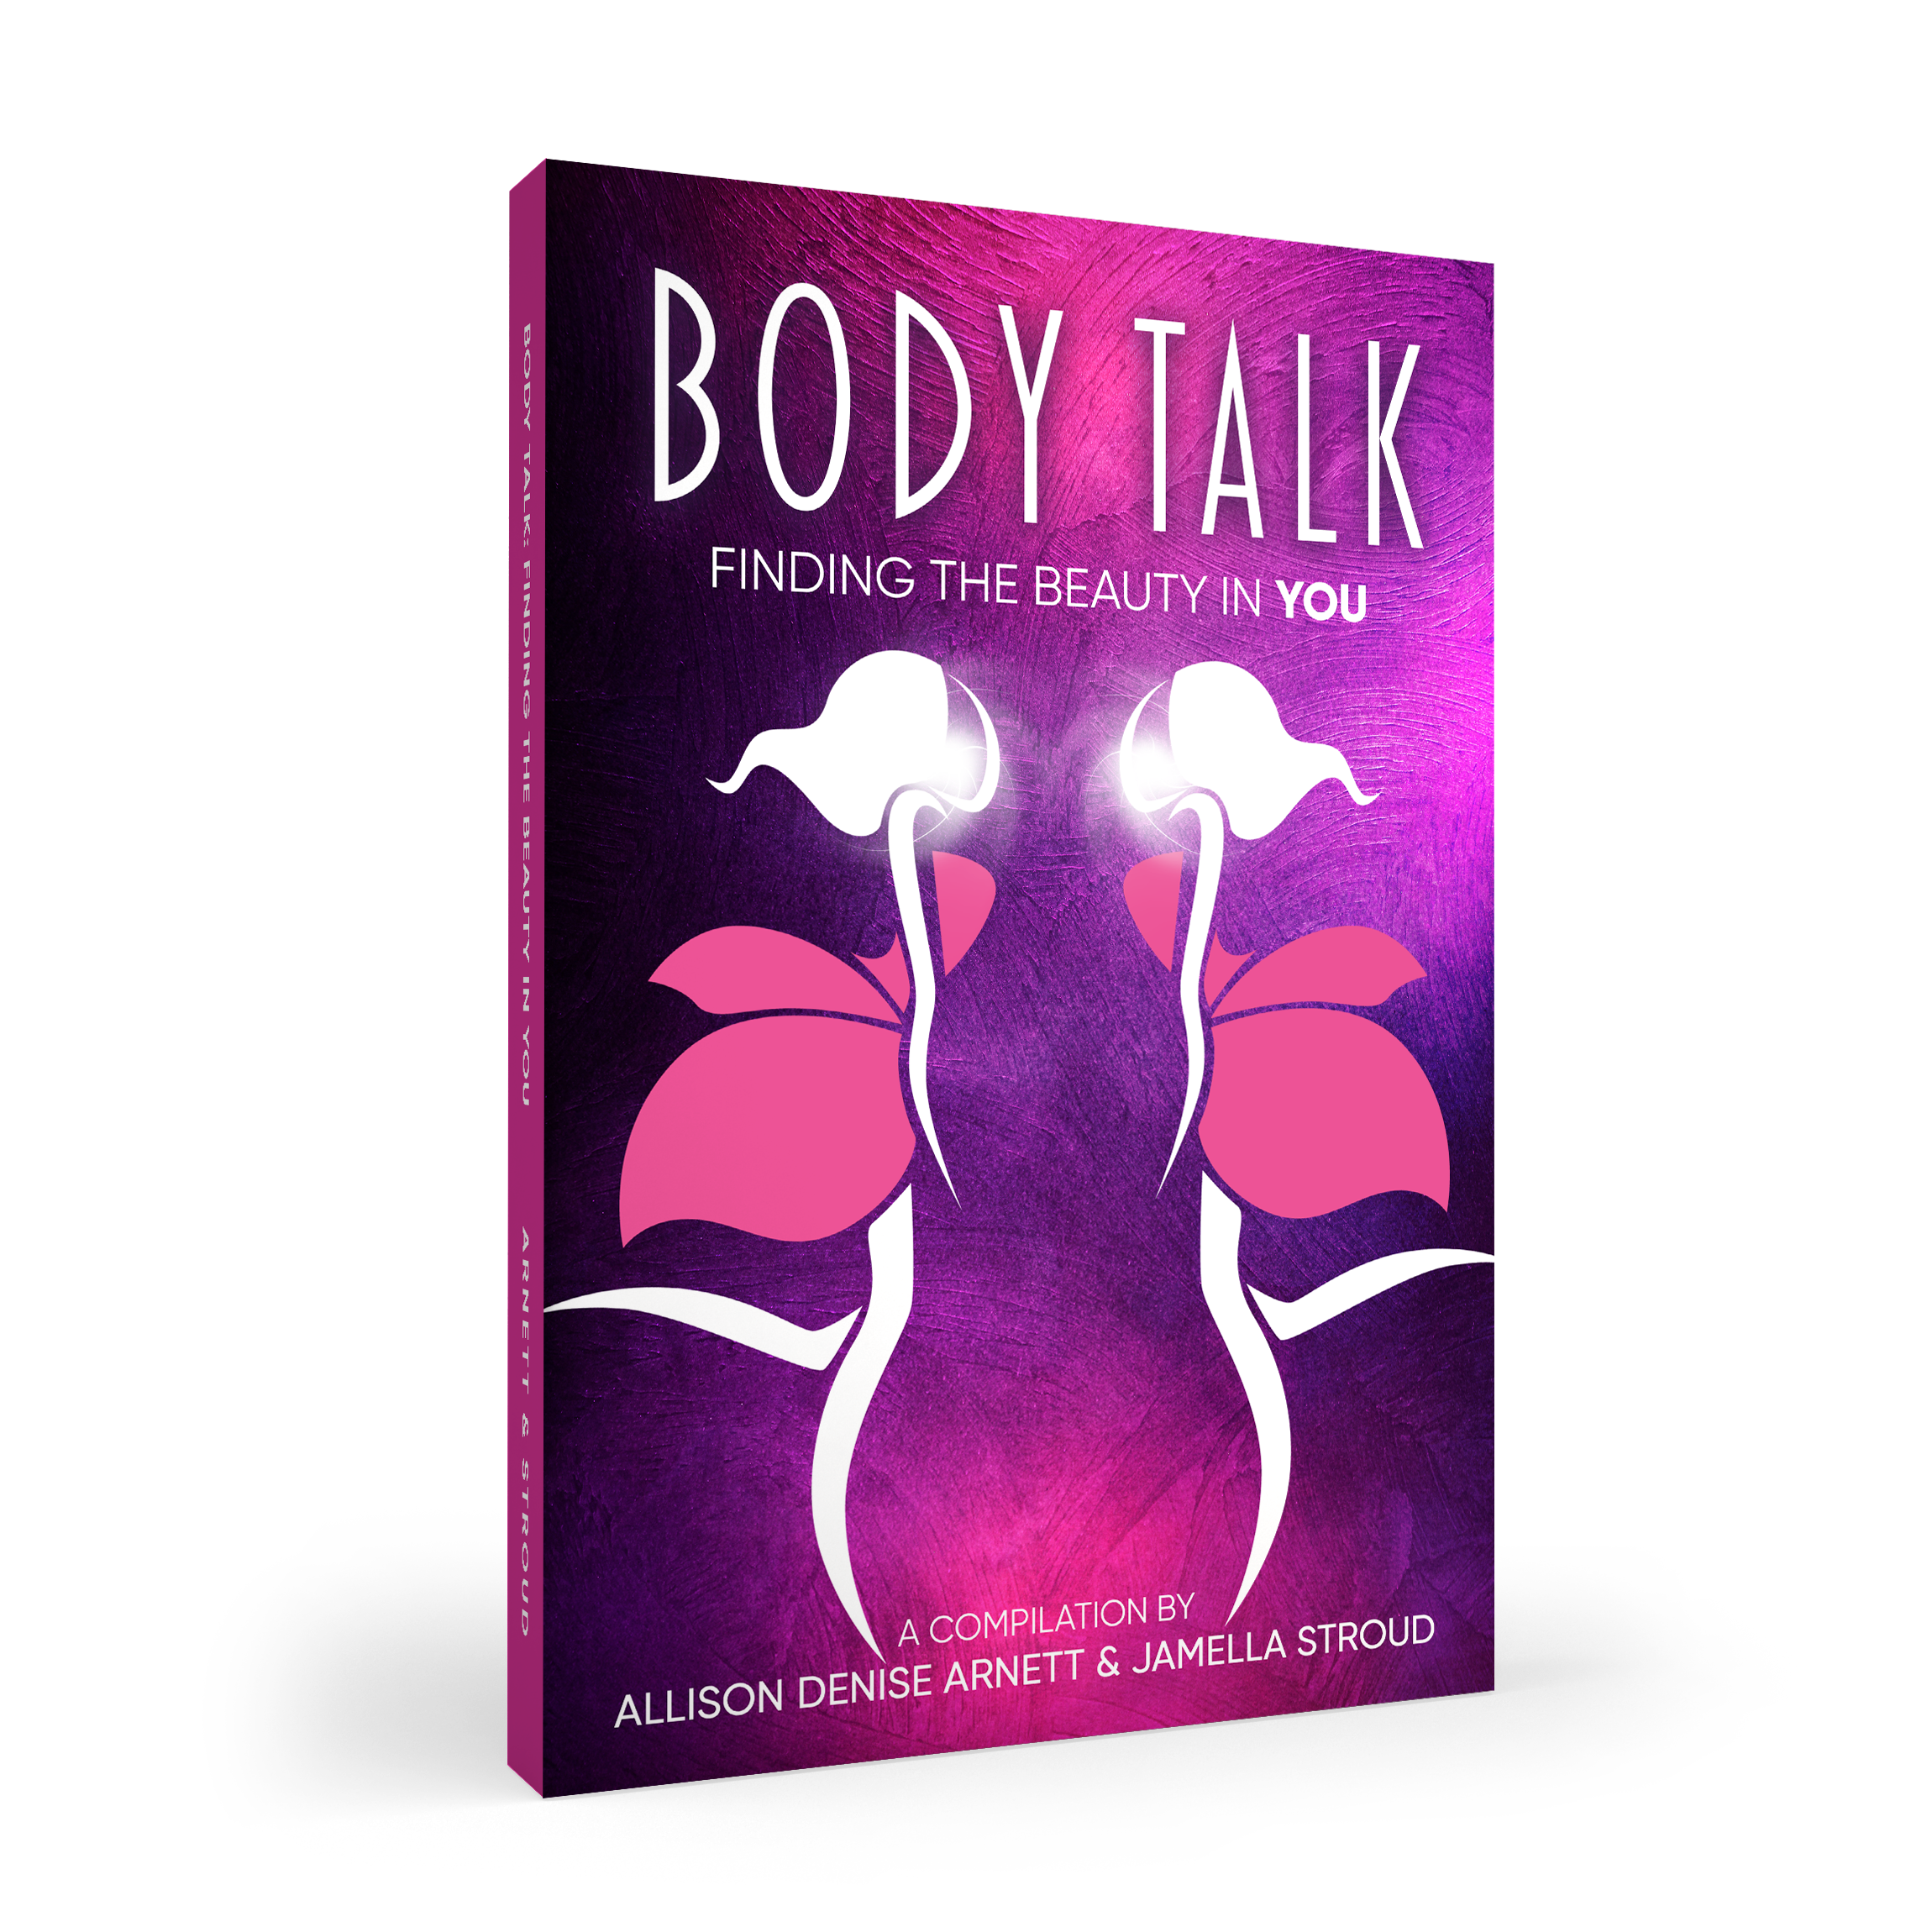 NAU Body Talk Cover Mockup2.png